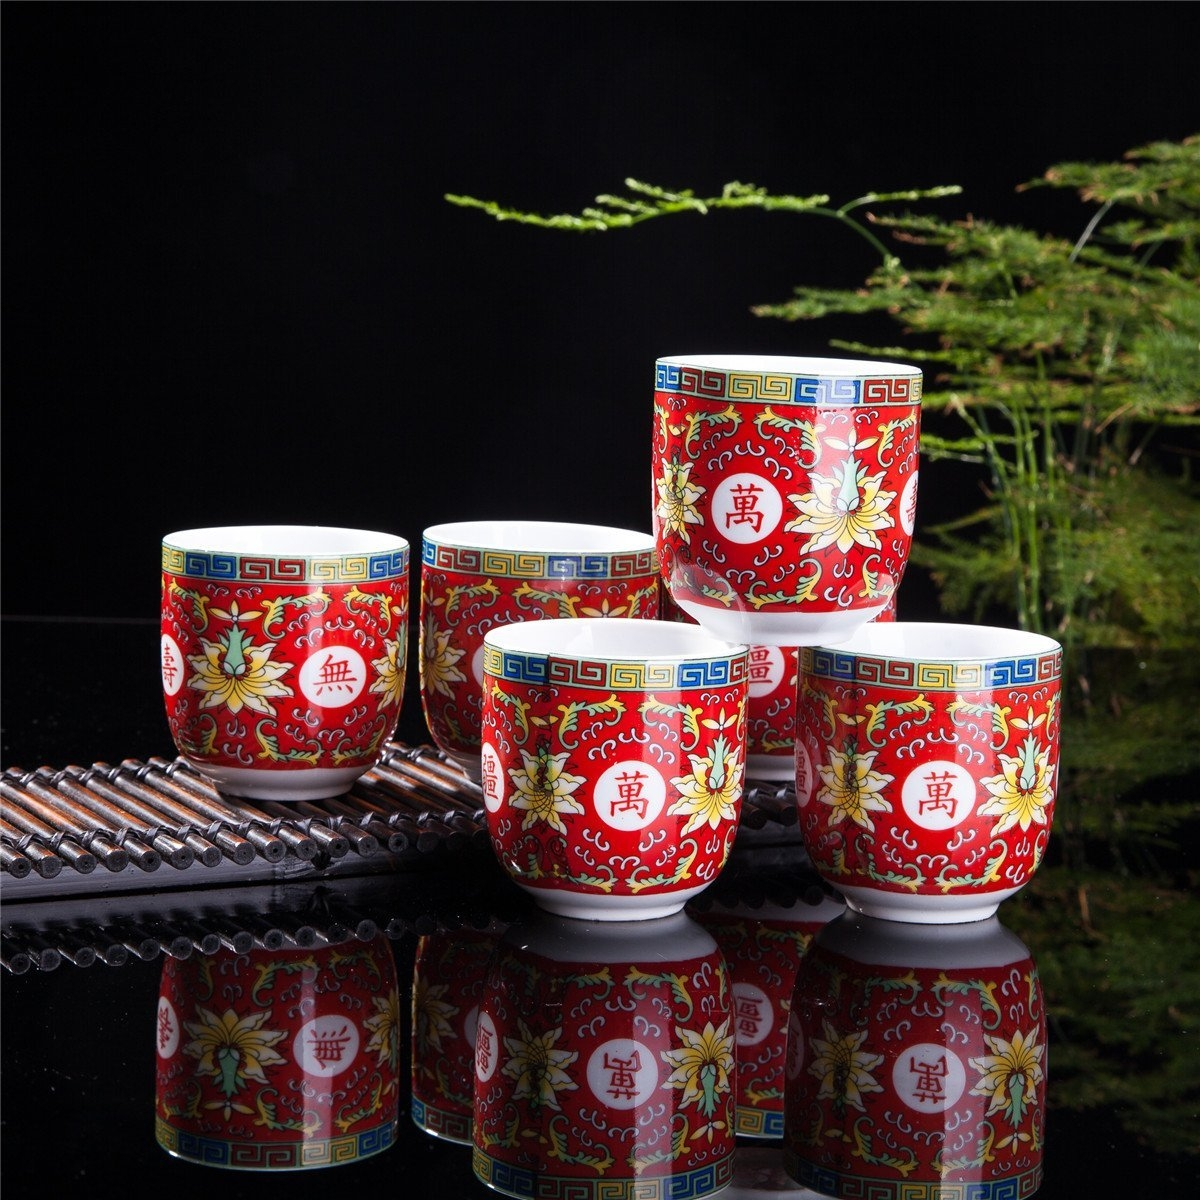 Set Of 6 Eastern Asian Design Ceramic Tea Cups In Red Longevity Symbol - 8 OZ Capacity Each